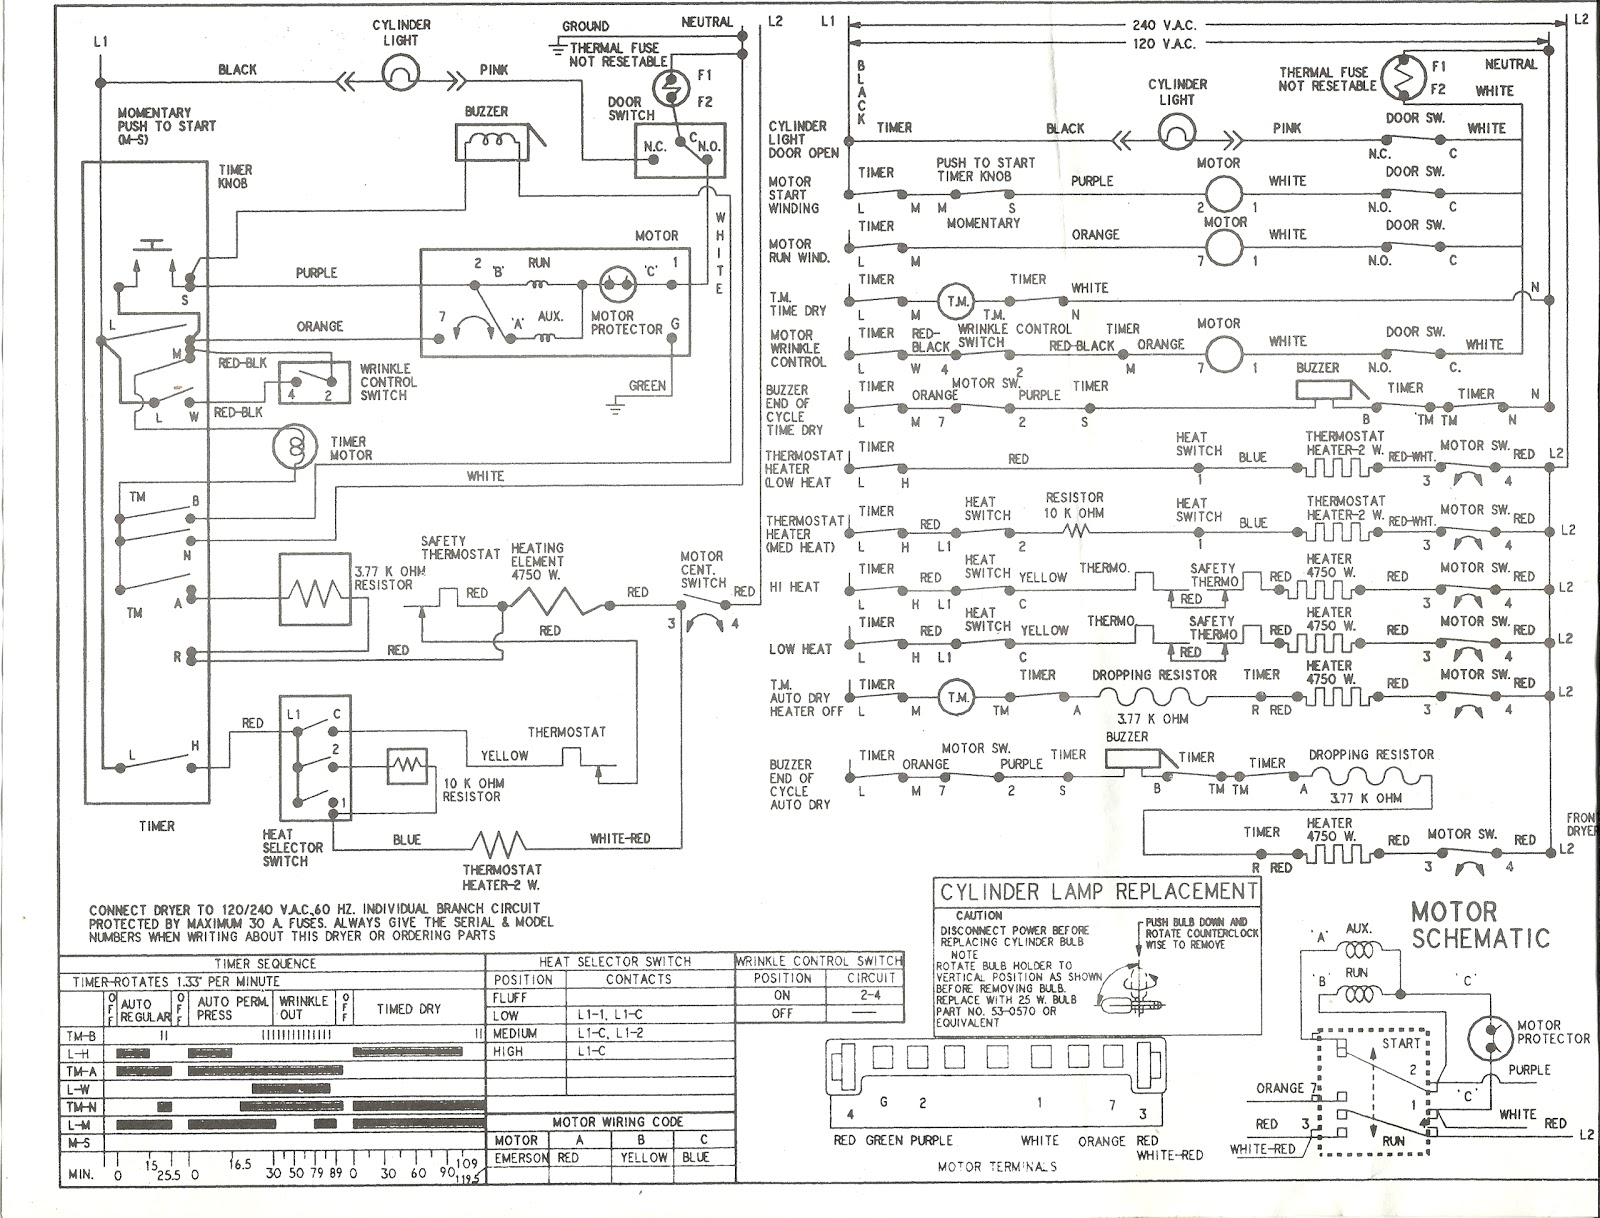 appliance talk kenmore series electric dryer wiring diagram schematic rh blog applianceoutletservice com Schematic Wiring Diagram Parallel Wiring Diagram